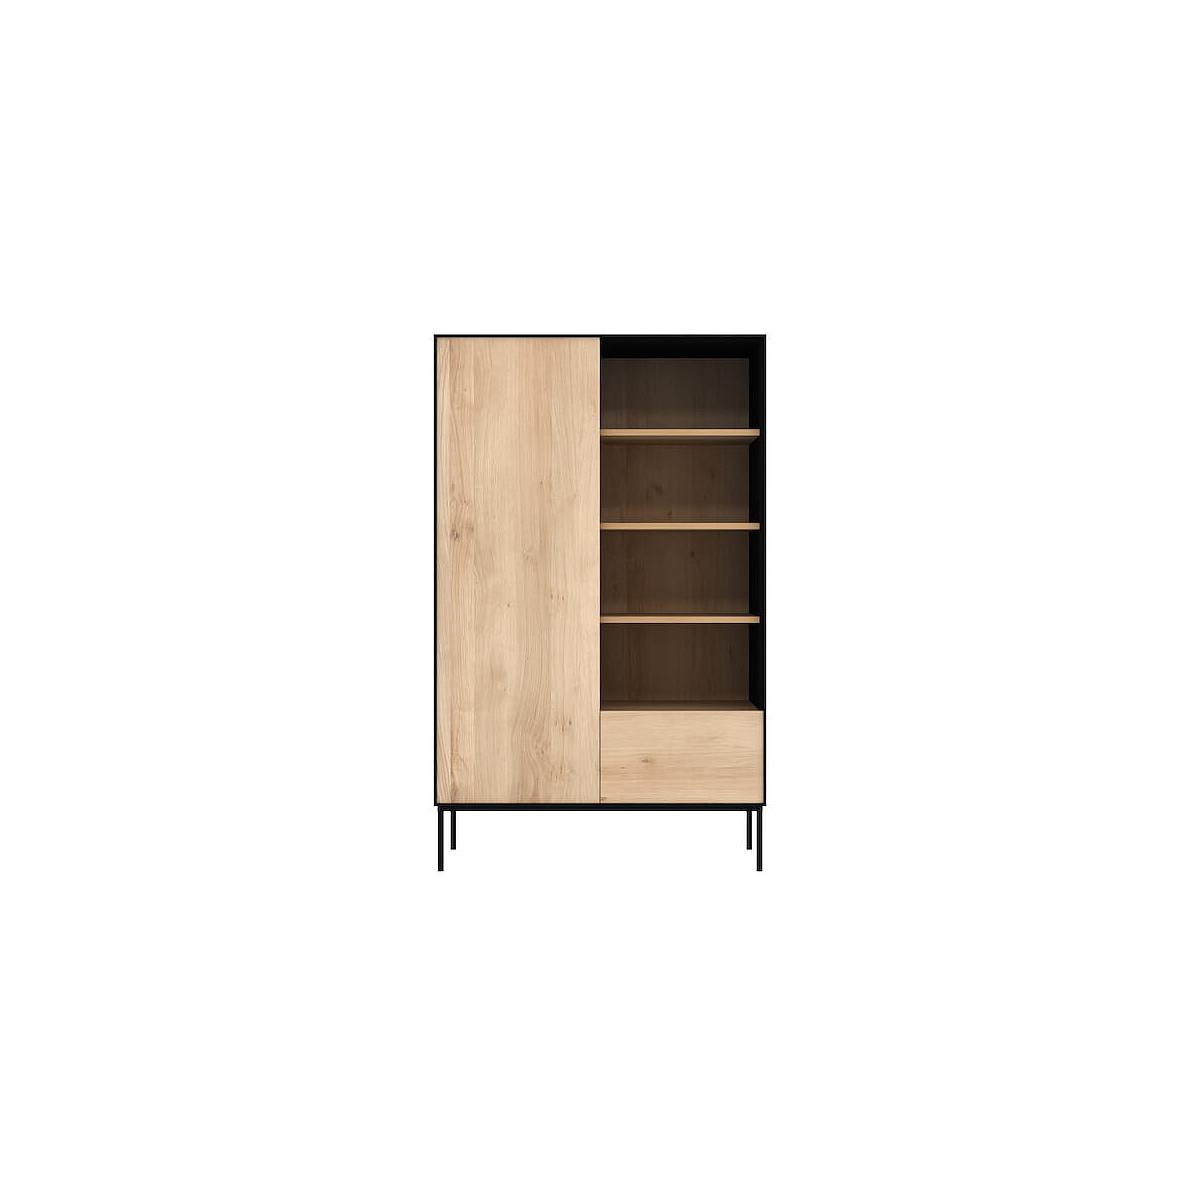 Armoire OAK BLACKBIRD Ethnicraft